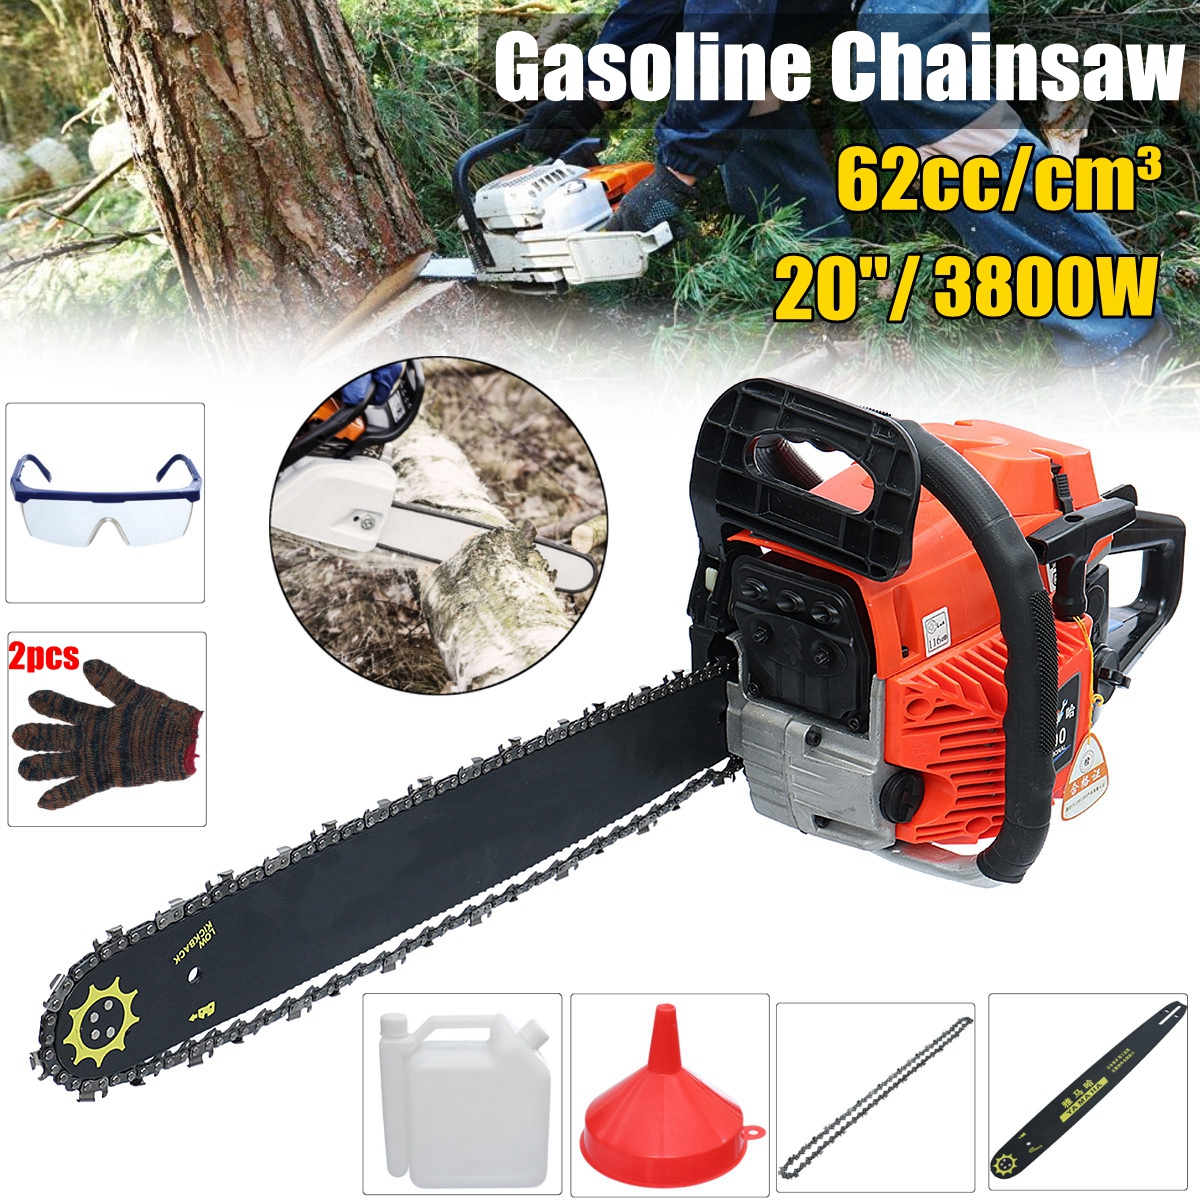 Buy Chainsaw And Get Free Shipping On Stihl Parts Diagram Oil Pump Engine Image For